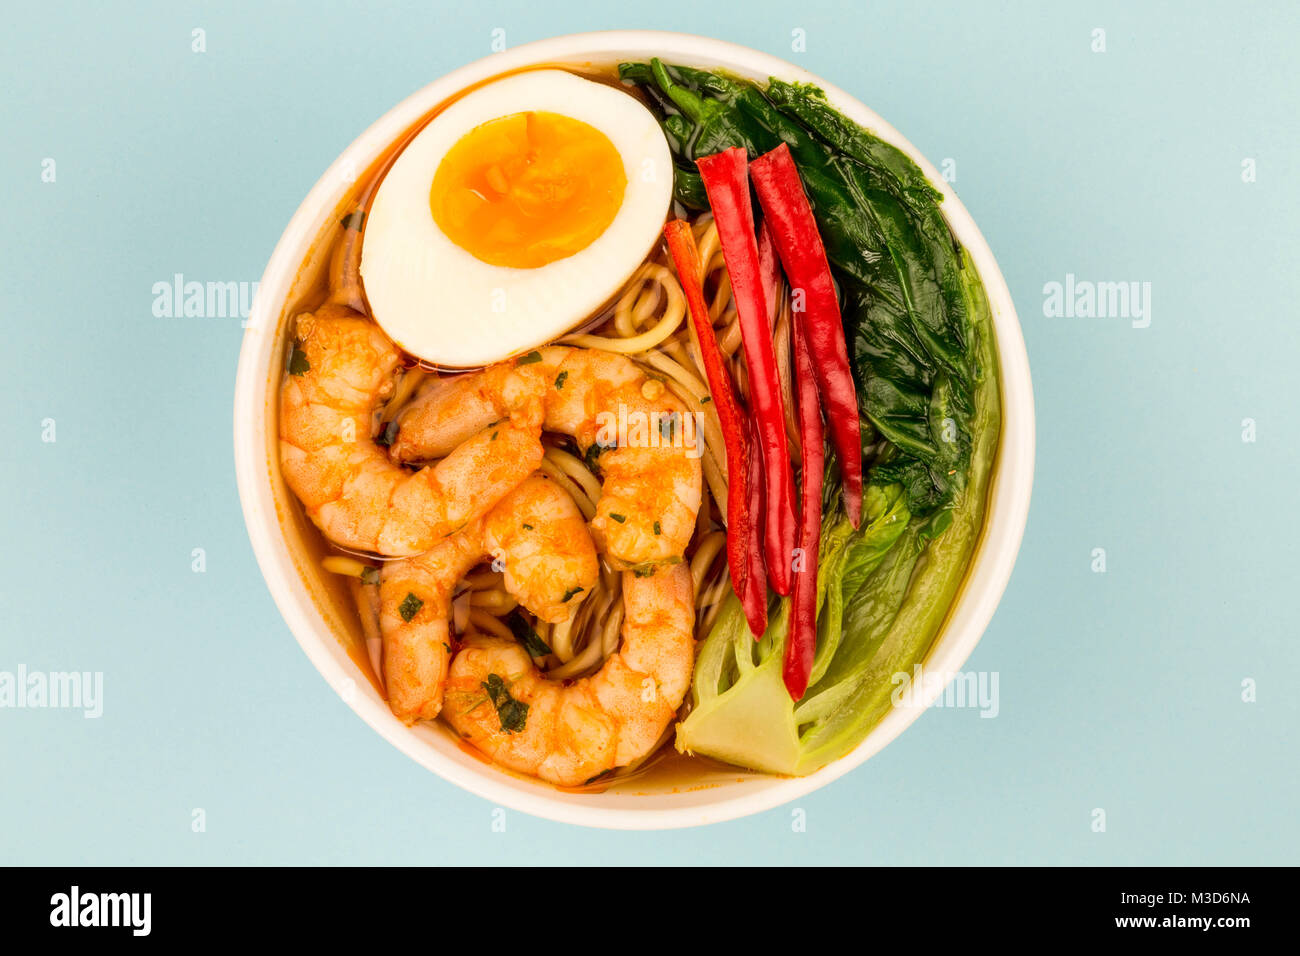 Japanese Style Prawn And Noodle Ramen Soup With Pak Choi And Chillies Against A Light Blue Background - Stock Image